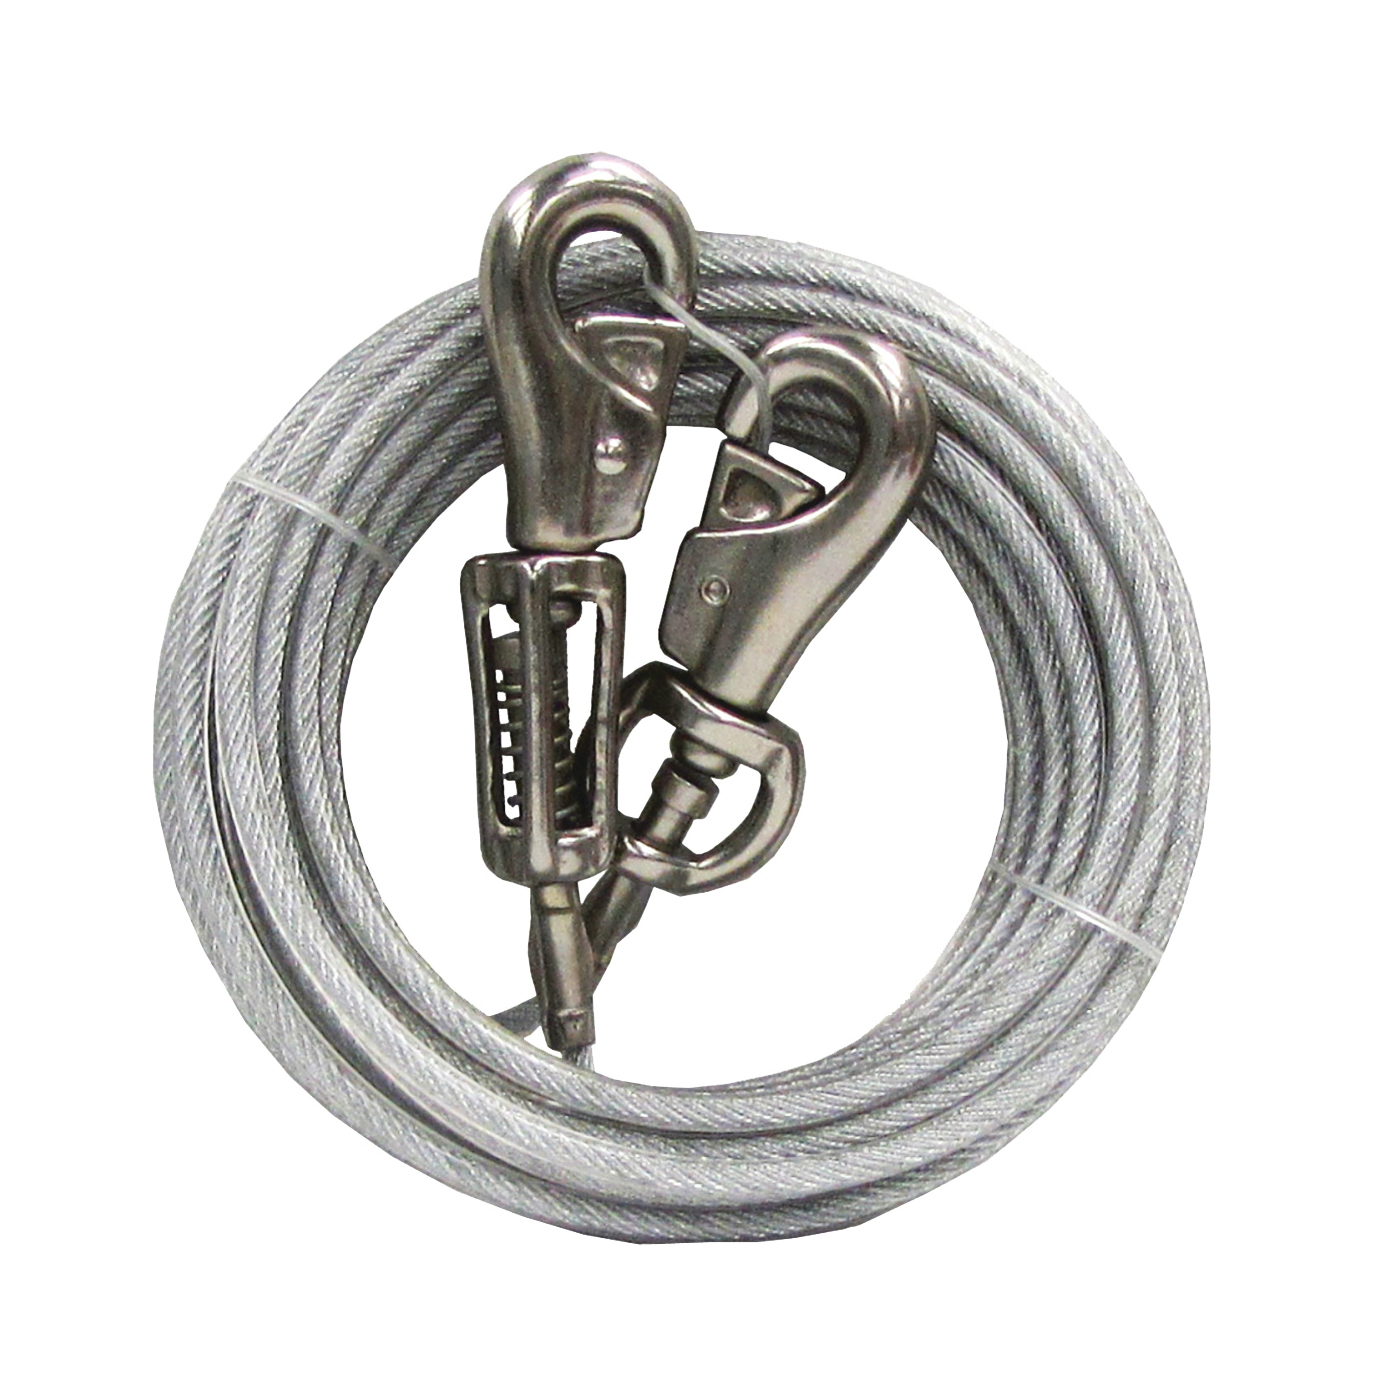 Picture of Boss Pet PDQ Q5720SPG99 Tie-Out with Spring, 20 ft L Belt/Cable, For: Extra Large Dogs Up to 125 lb